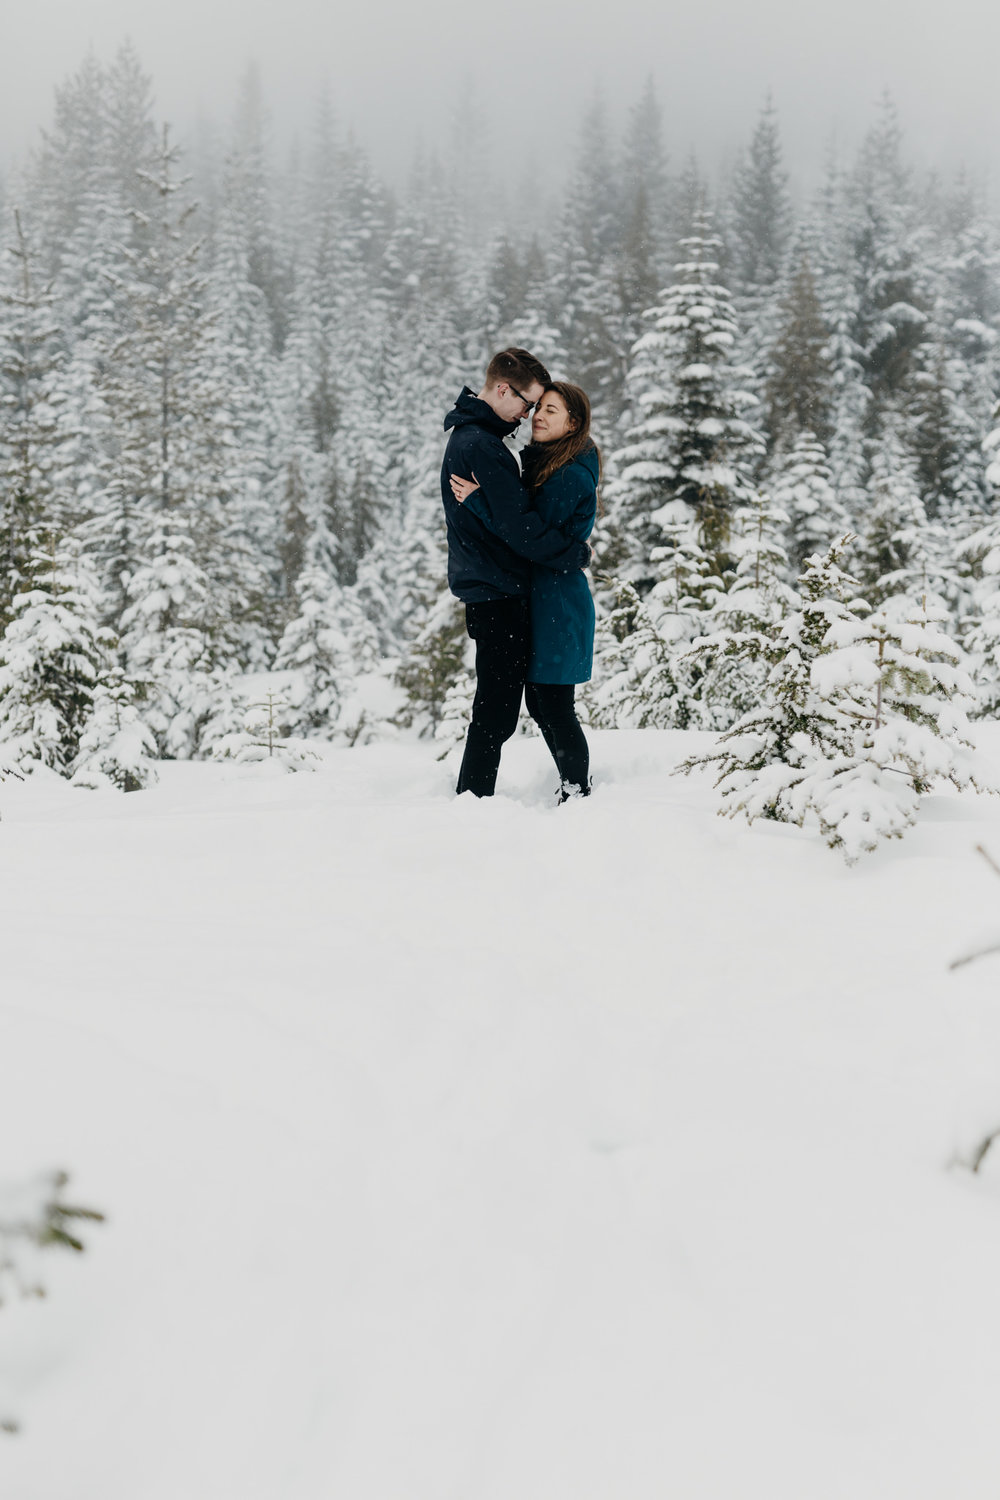 greg+jade-mount-washington-winter-engagement128.JPG